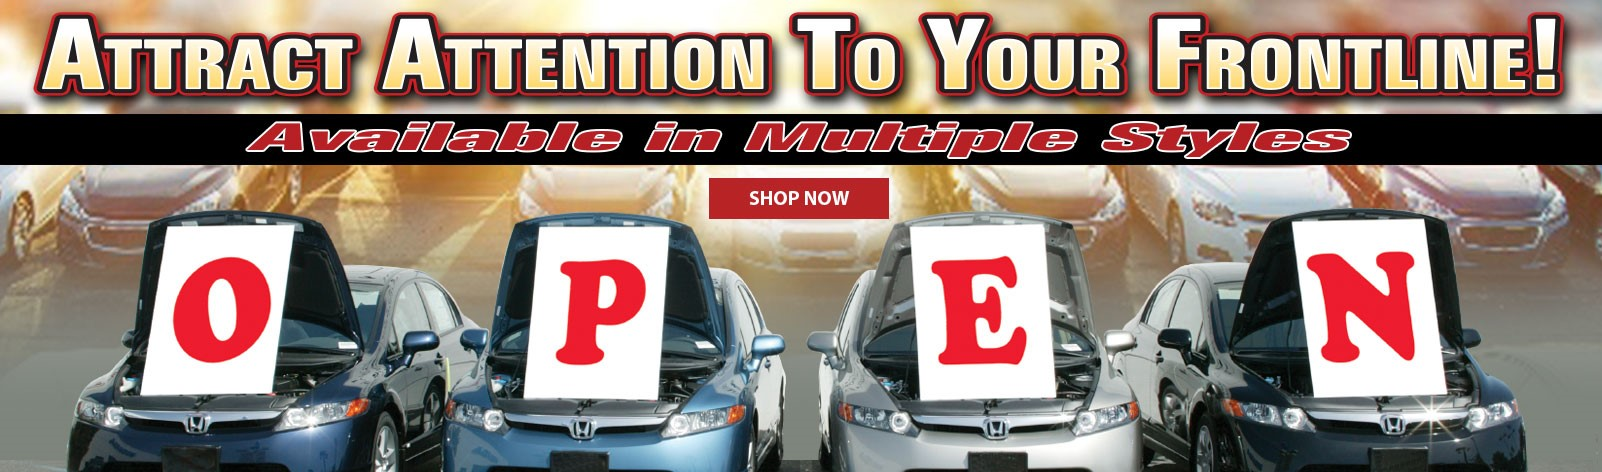 Attract attention to your frontline with Under the Hood Signs!